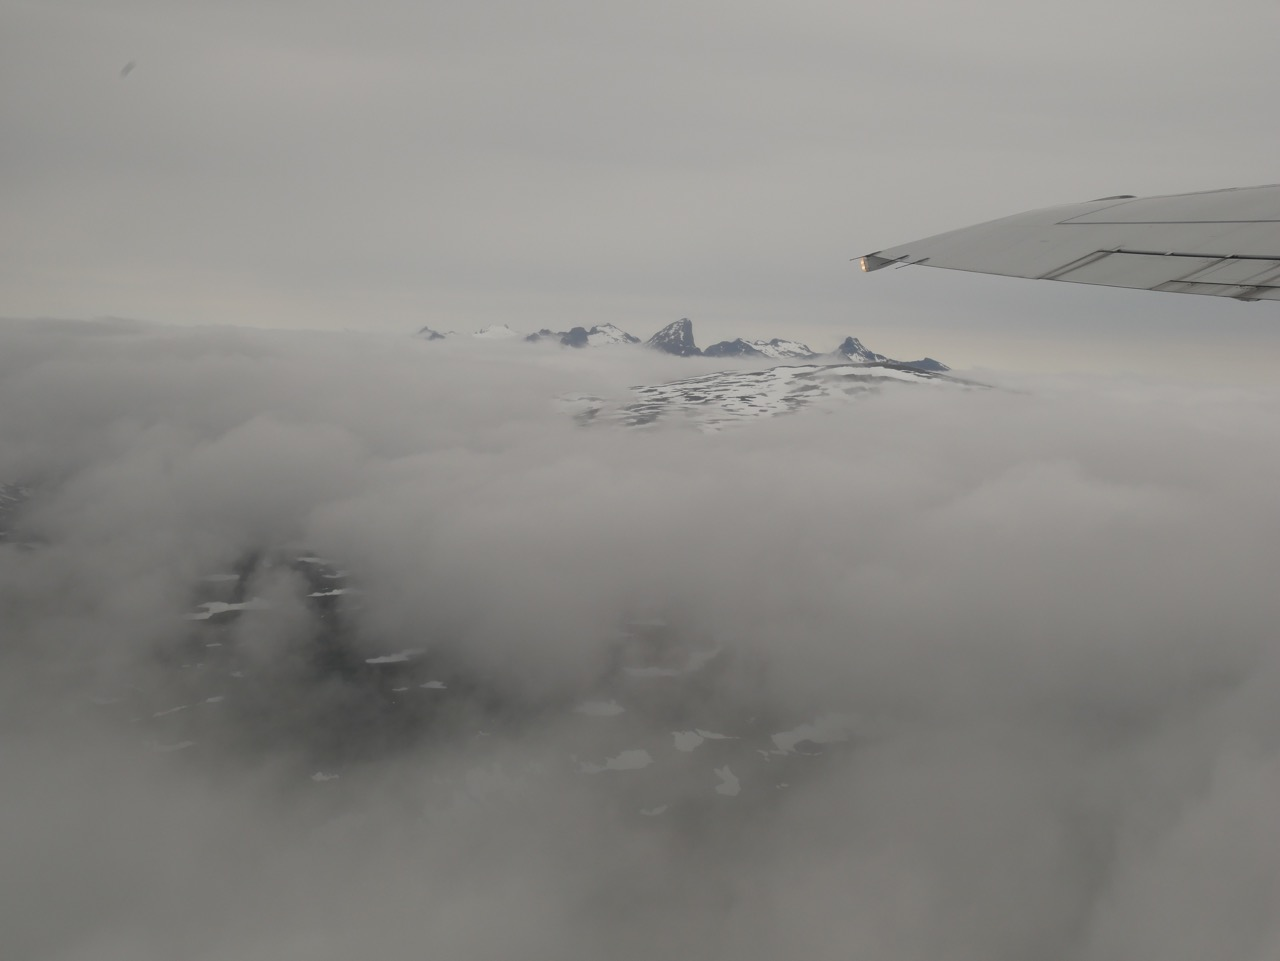 The view from the plane as I flew out of Tromsø on June 22.